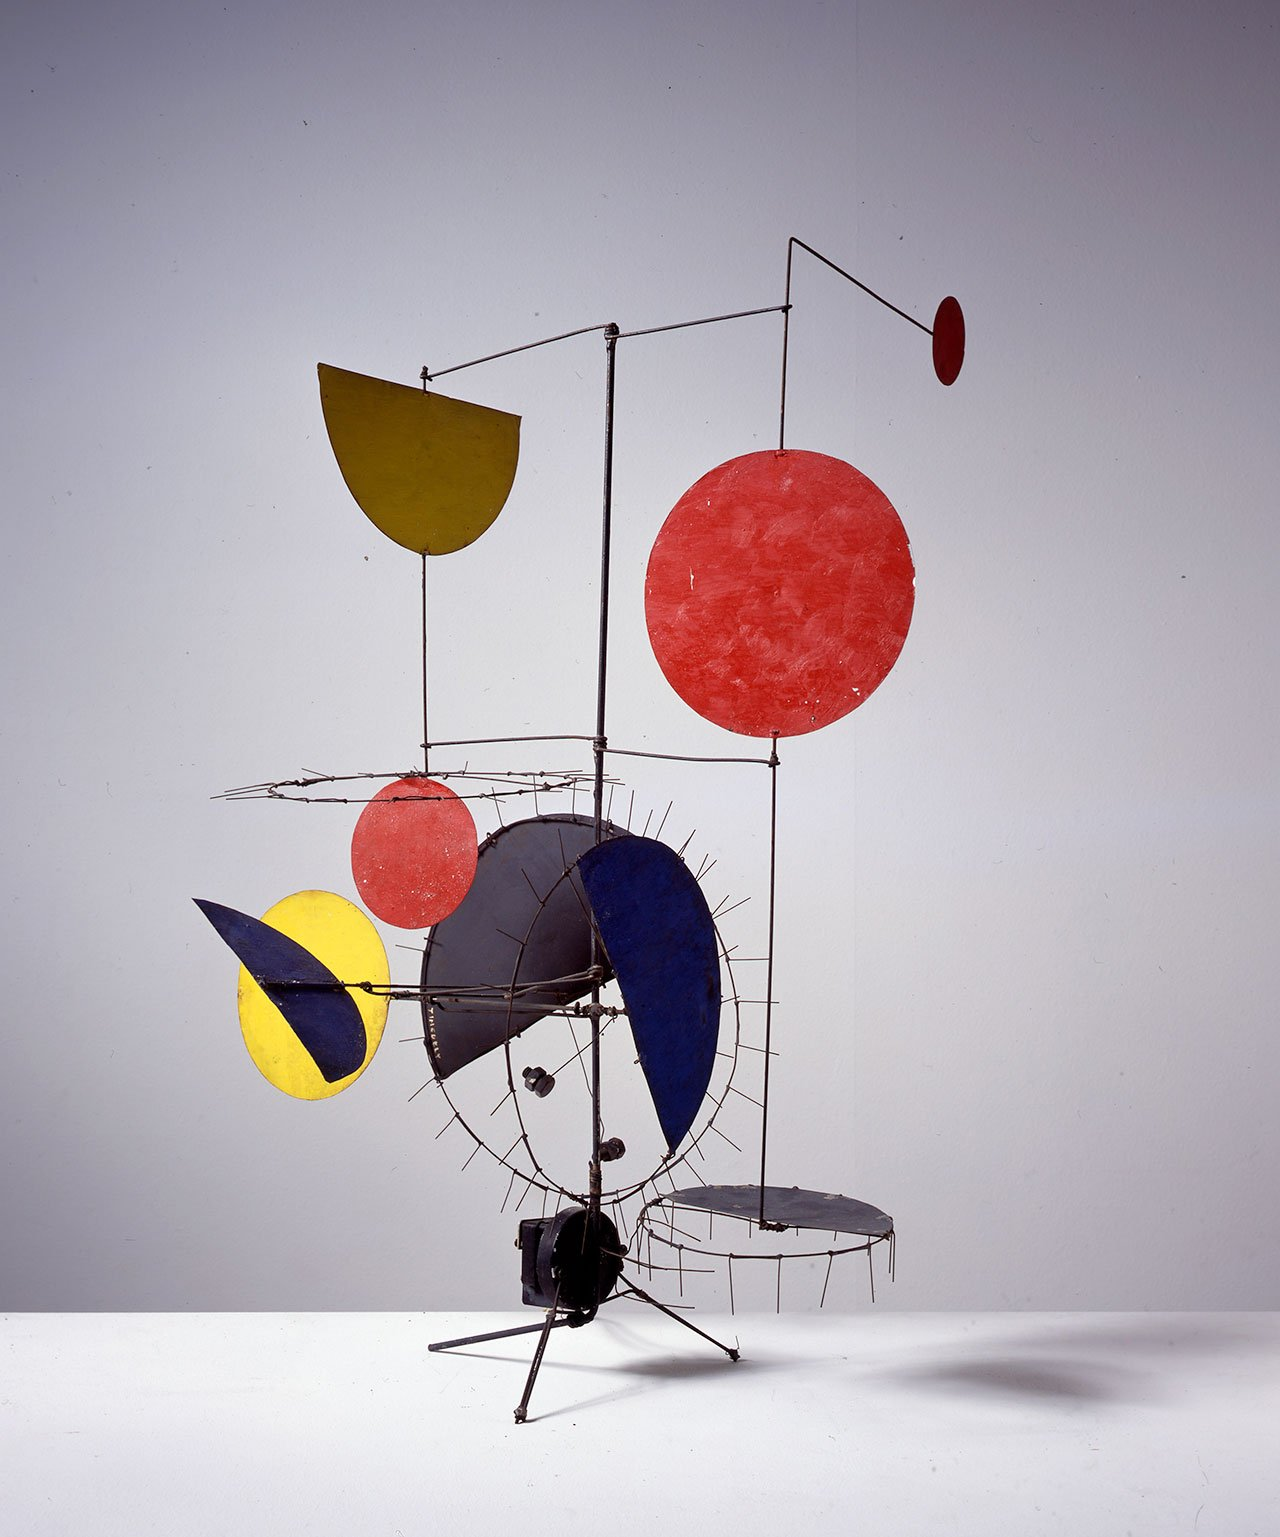 Jean Tinguely, Meta-mechanical sculpture untitled, 1954. Private Collection Potsdam. Photo: Christian Baur, c/o Pictoright Amsterdam, 2016.